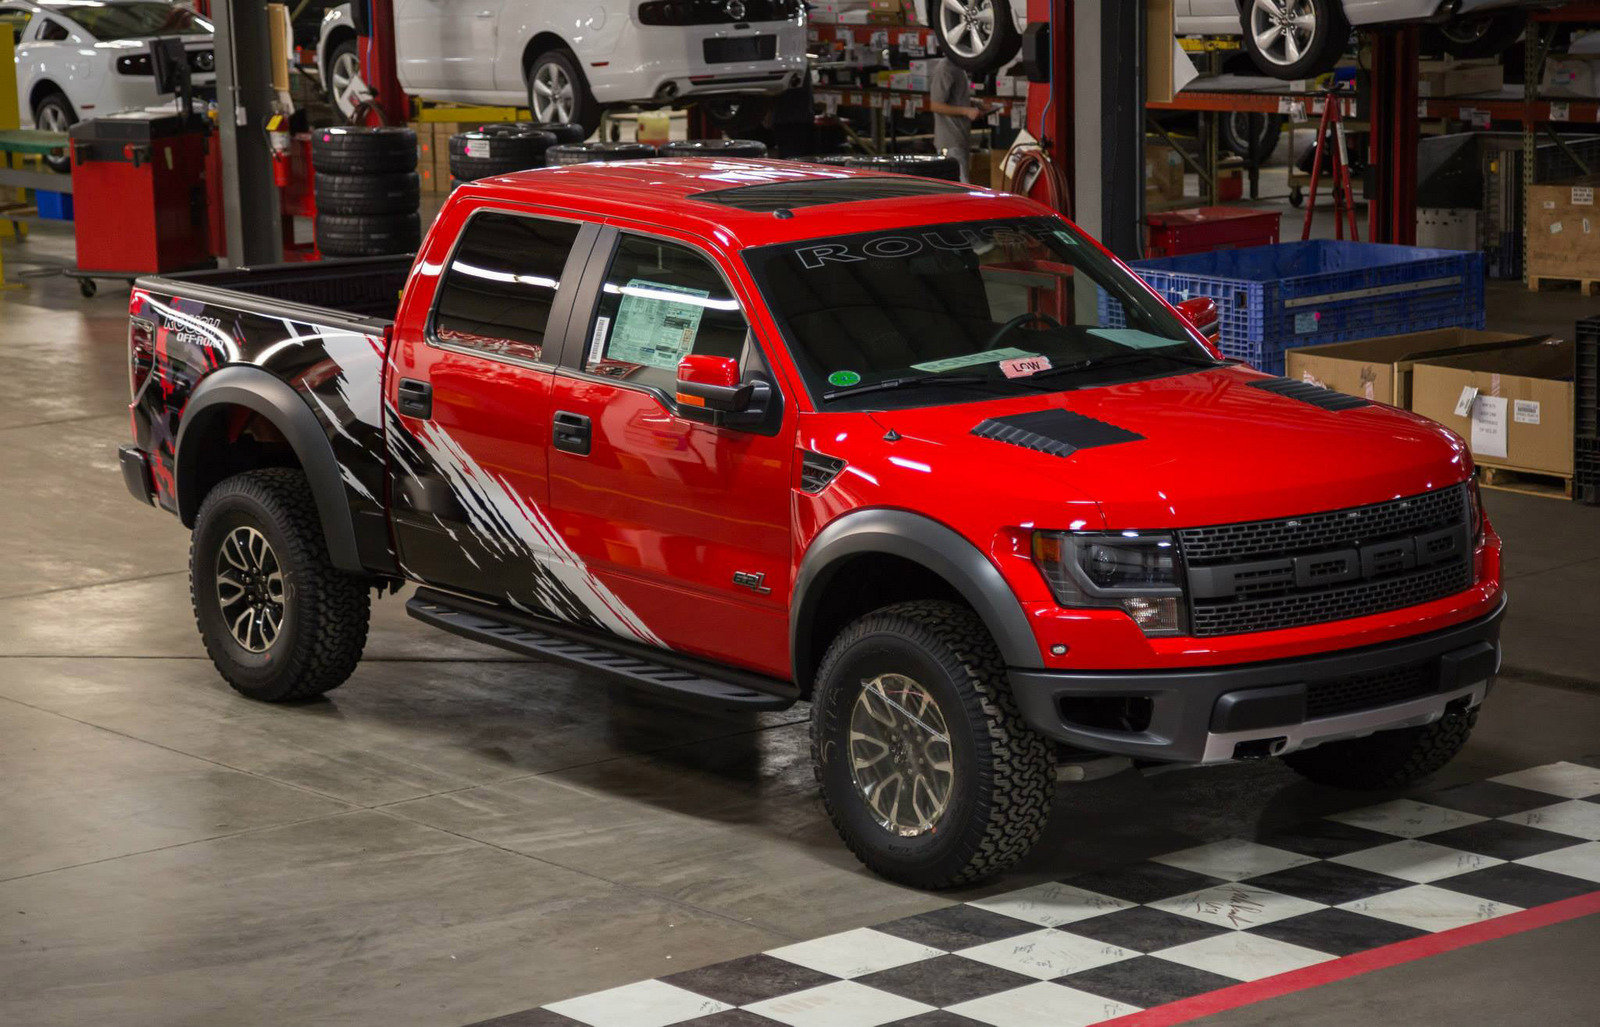 2014 ford f 150 svt raptor by roush performance picture 539294 car review. Cars Review. Best American Auto & Cars Review